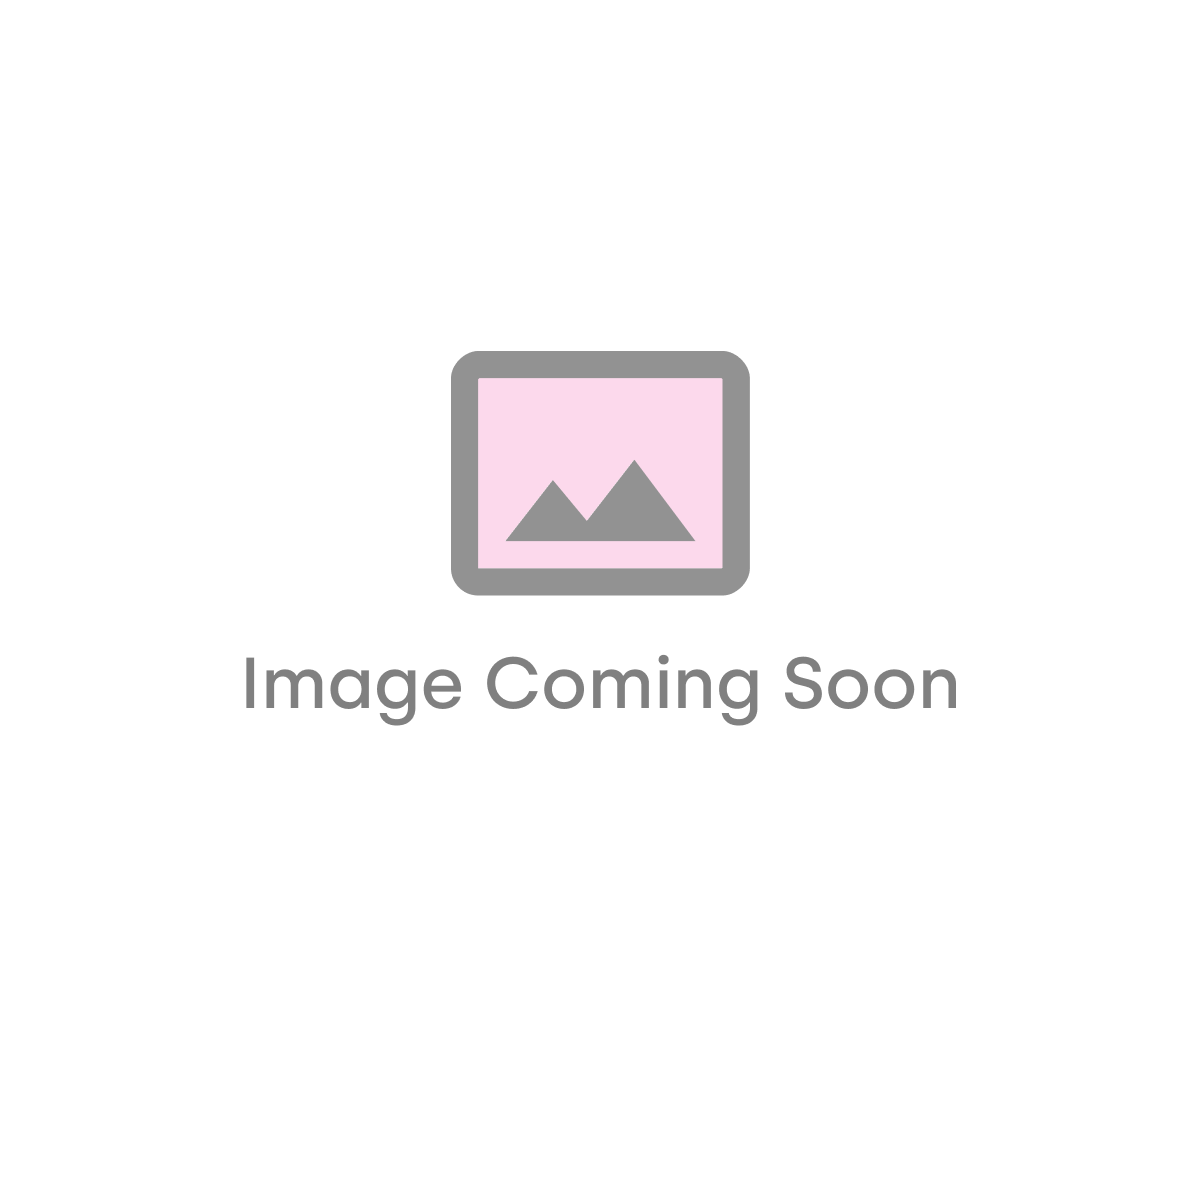 Volcanic Oak Herringbone 12mm Laminate Wooden Flooring - 1.92sqm per pack (14000)